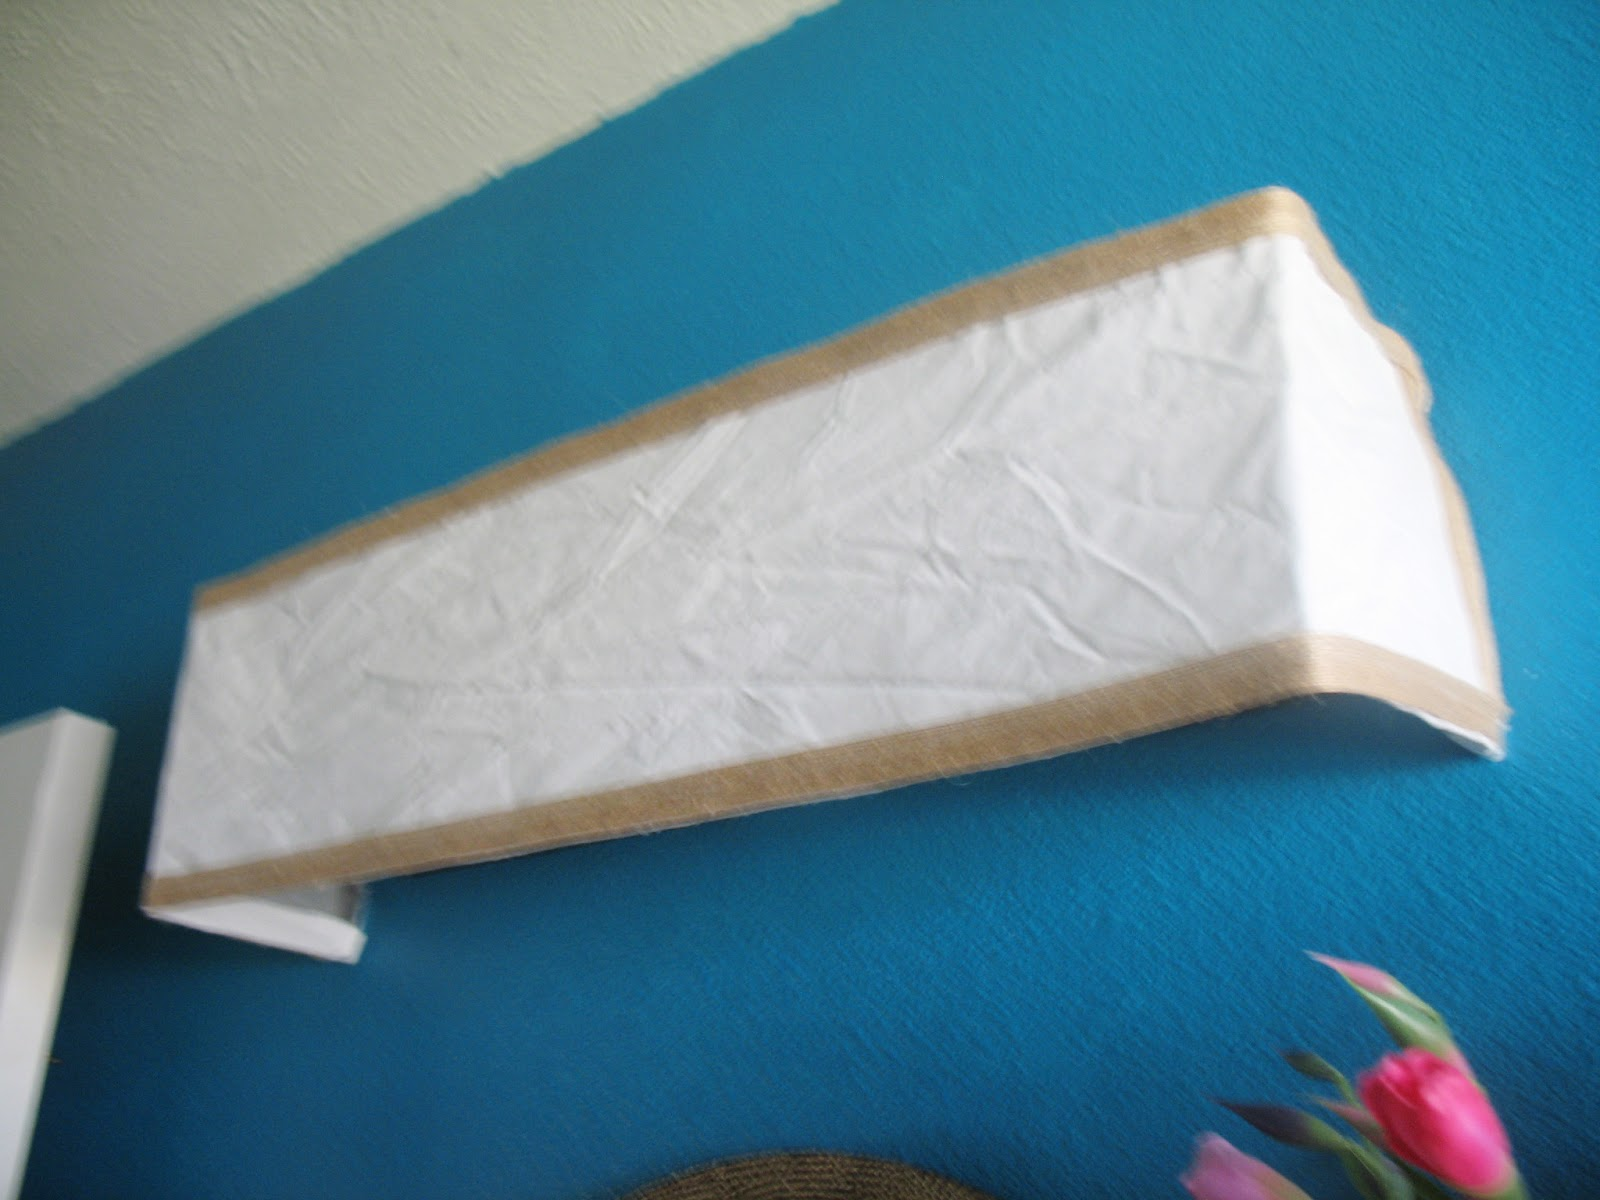 Diy Vanity Light Bar Shade : Shoestring Pavilion: Bathroom mini makeover